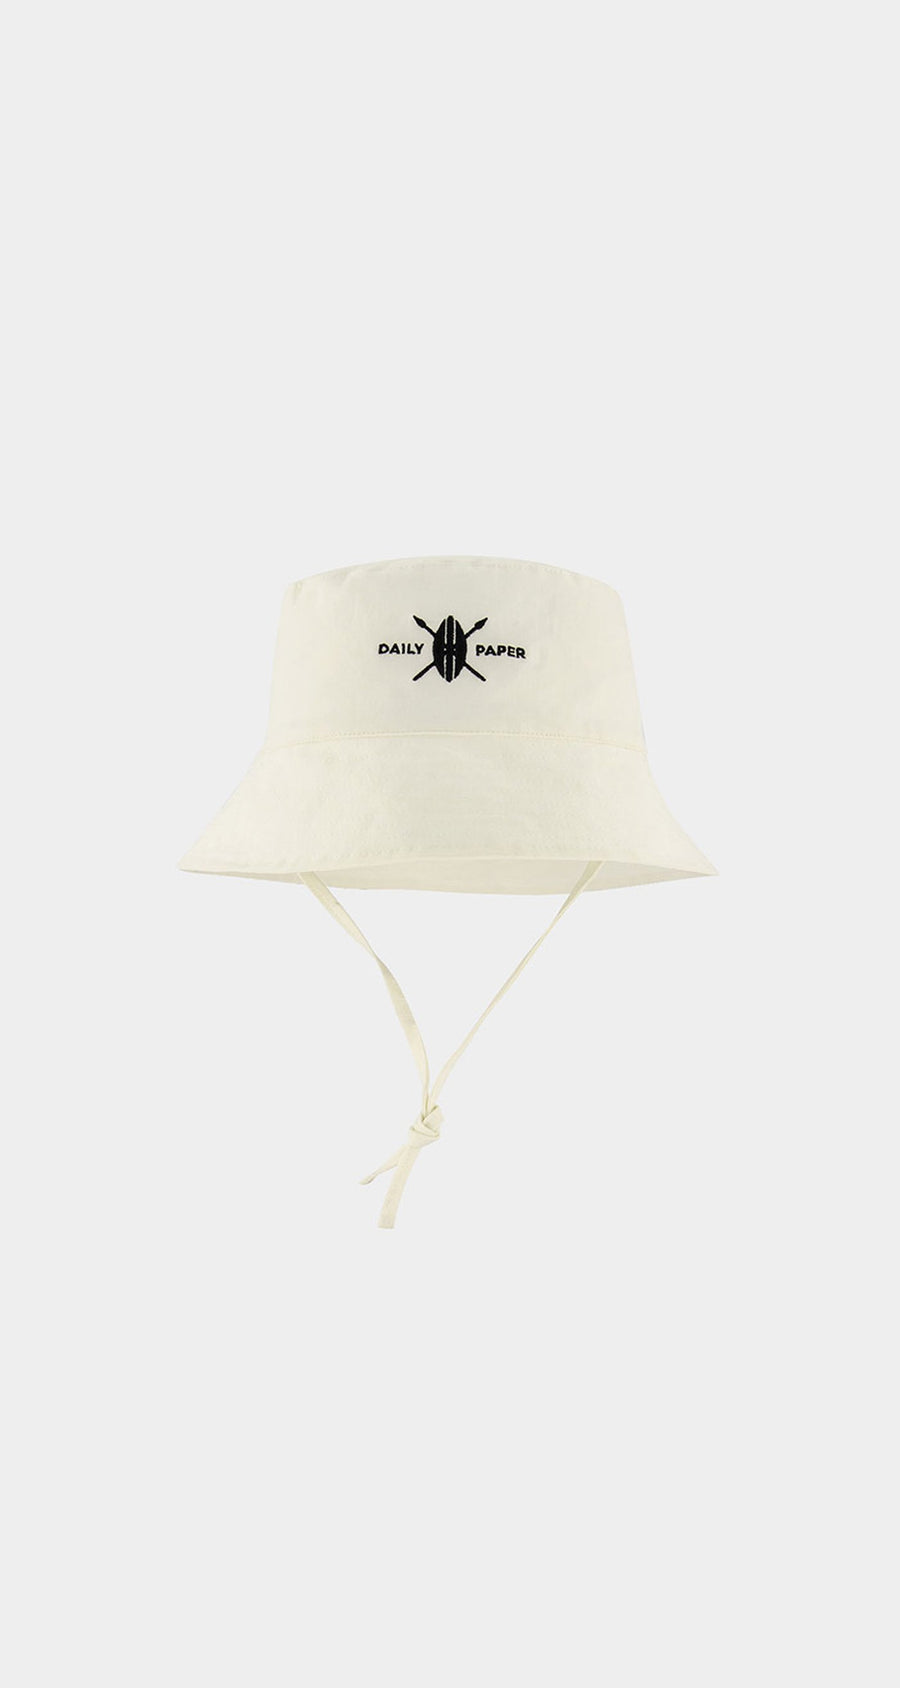 Daily Paper - White Baby Logo Bucket Hat Front